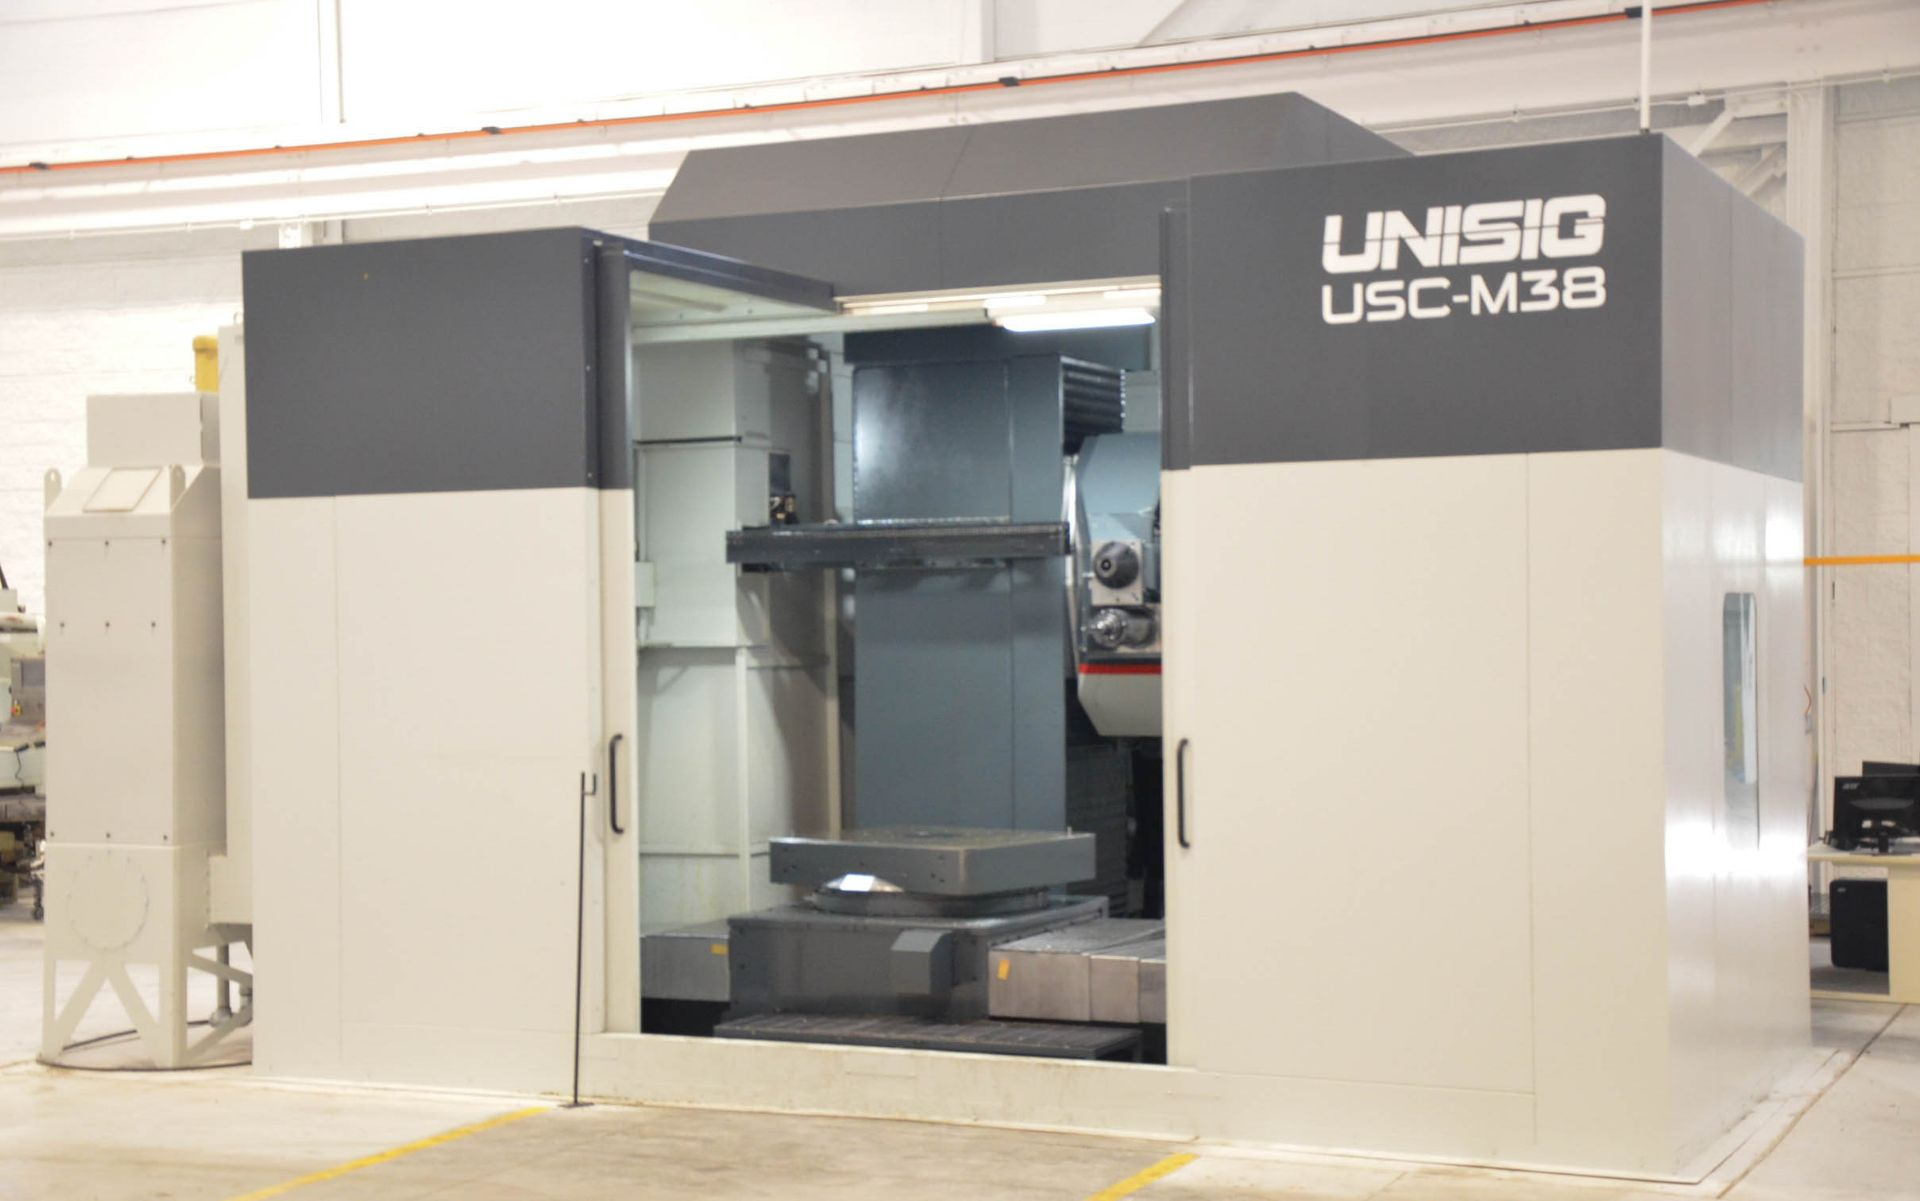 UNISIG (2020) USC-M38 5-AXIS COMBINATION CNC GUN DRILLING AND MILLING MACHINE WITH HEIDENHAIN ITNC - Image 3 of 17